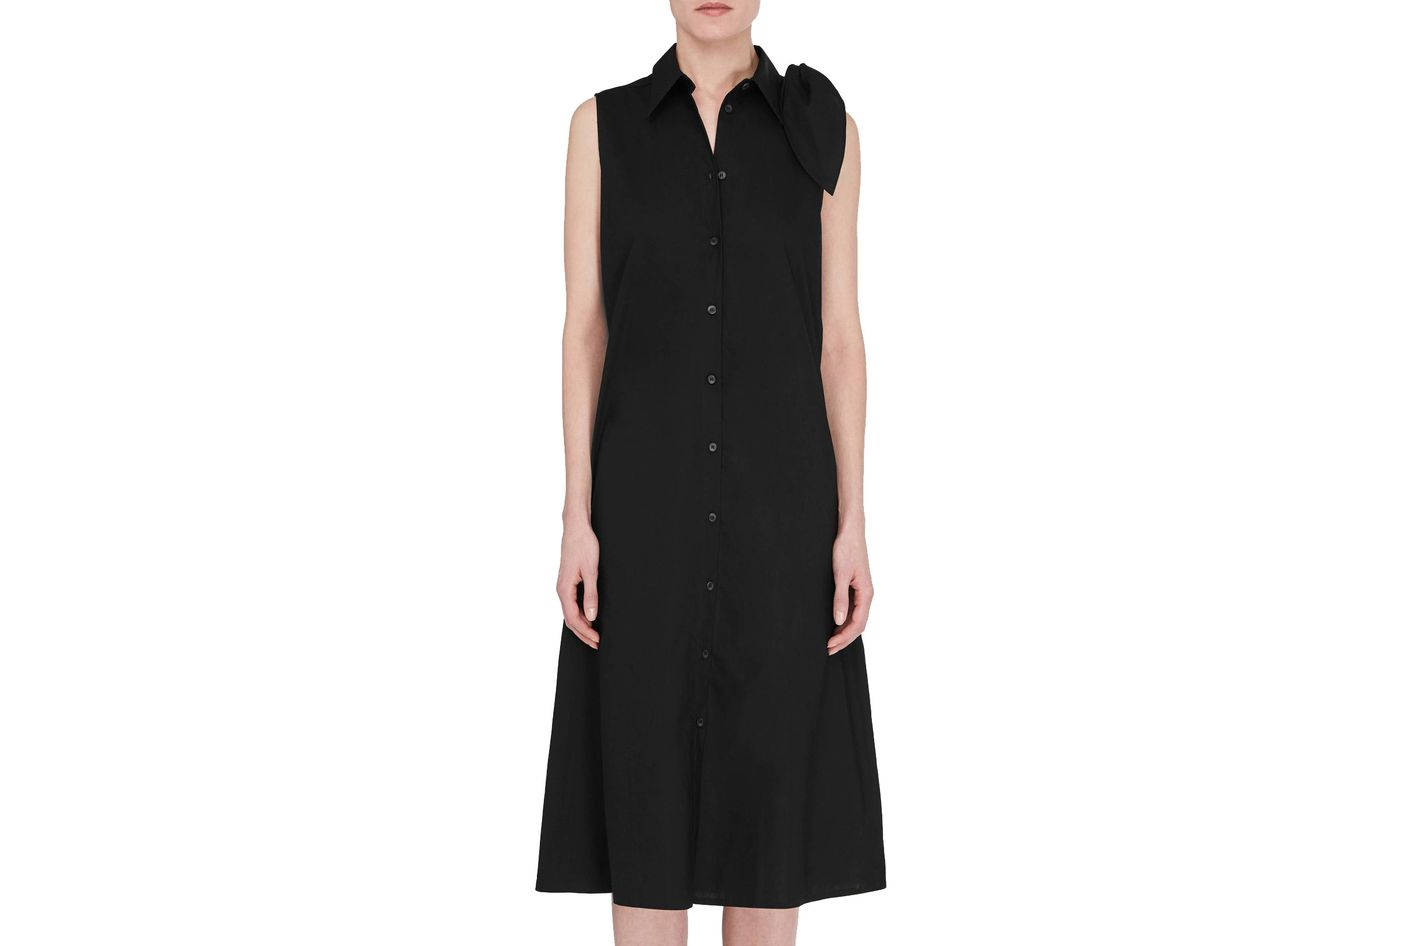 MM6 Maison Margiela Shoulder Tie Dress